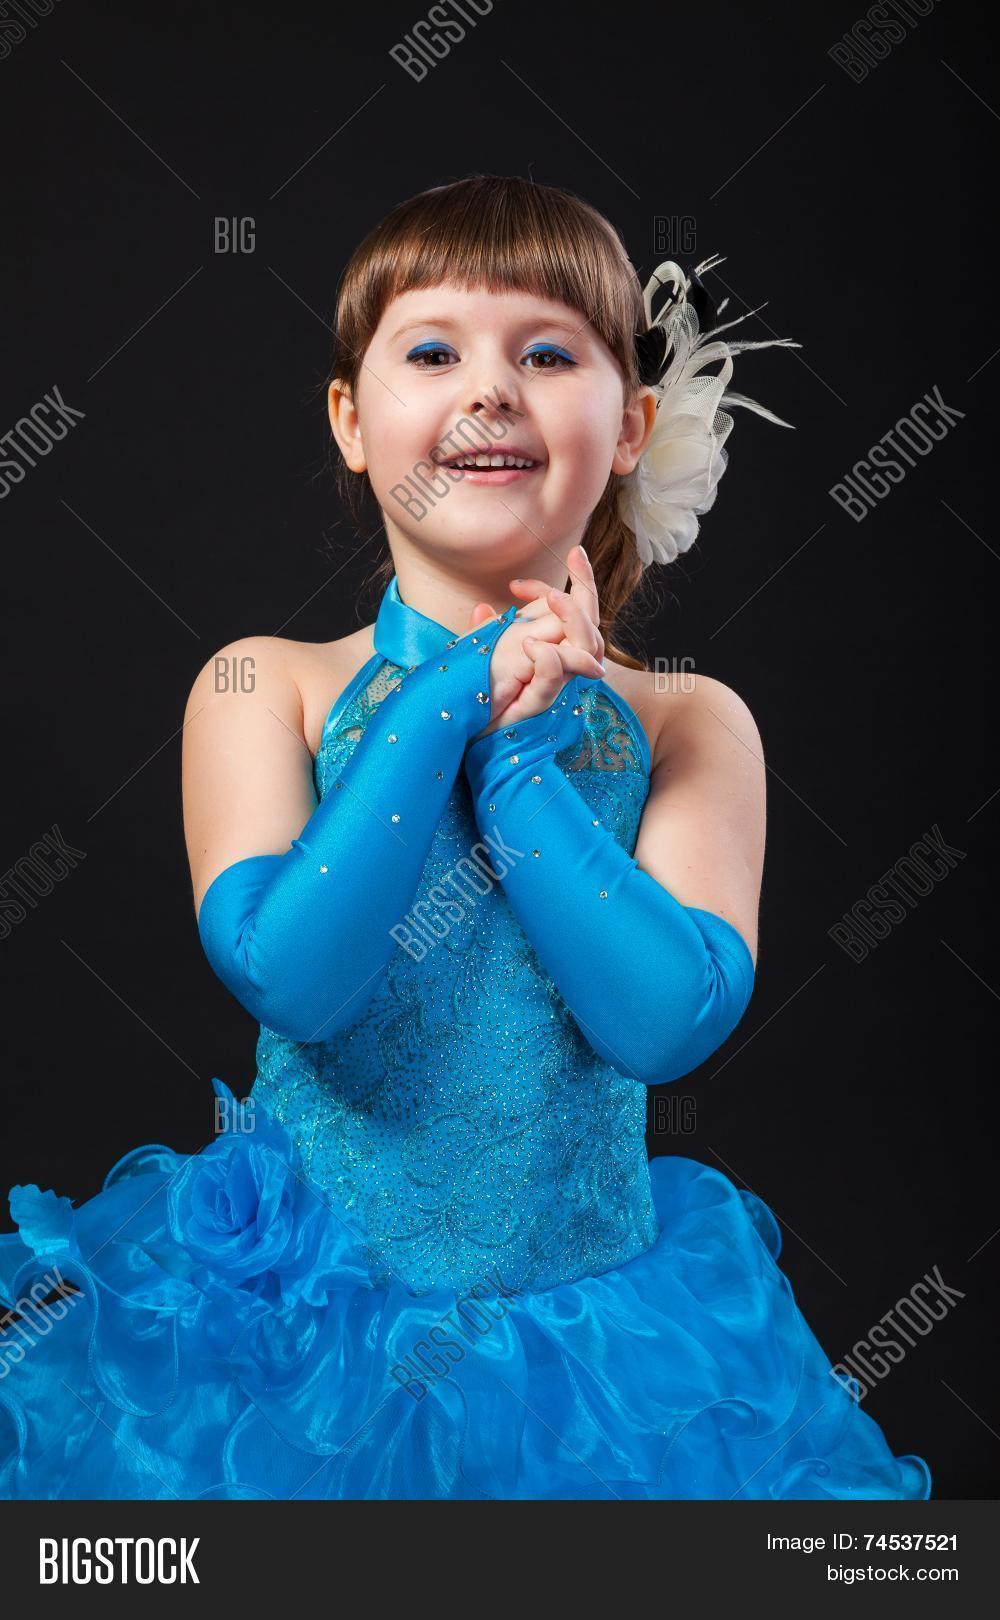 32a6a2c69341 Portrait Cute Smiling Image   Photo (Free Trial)